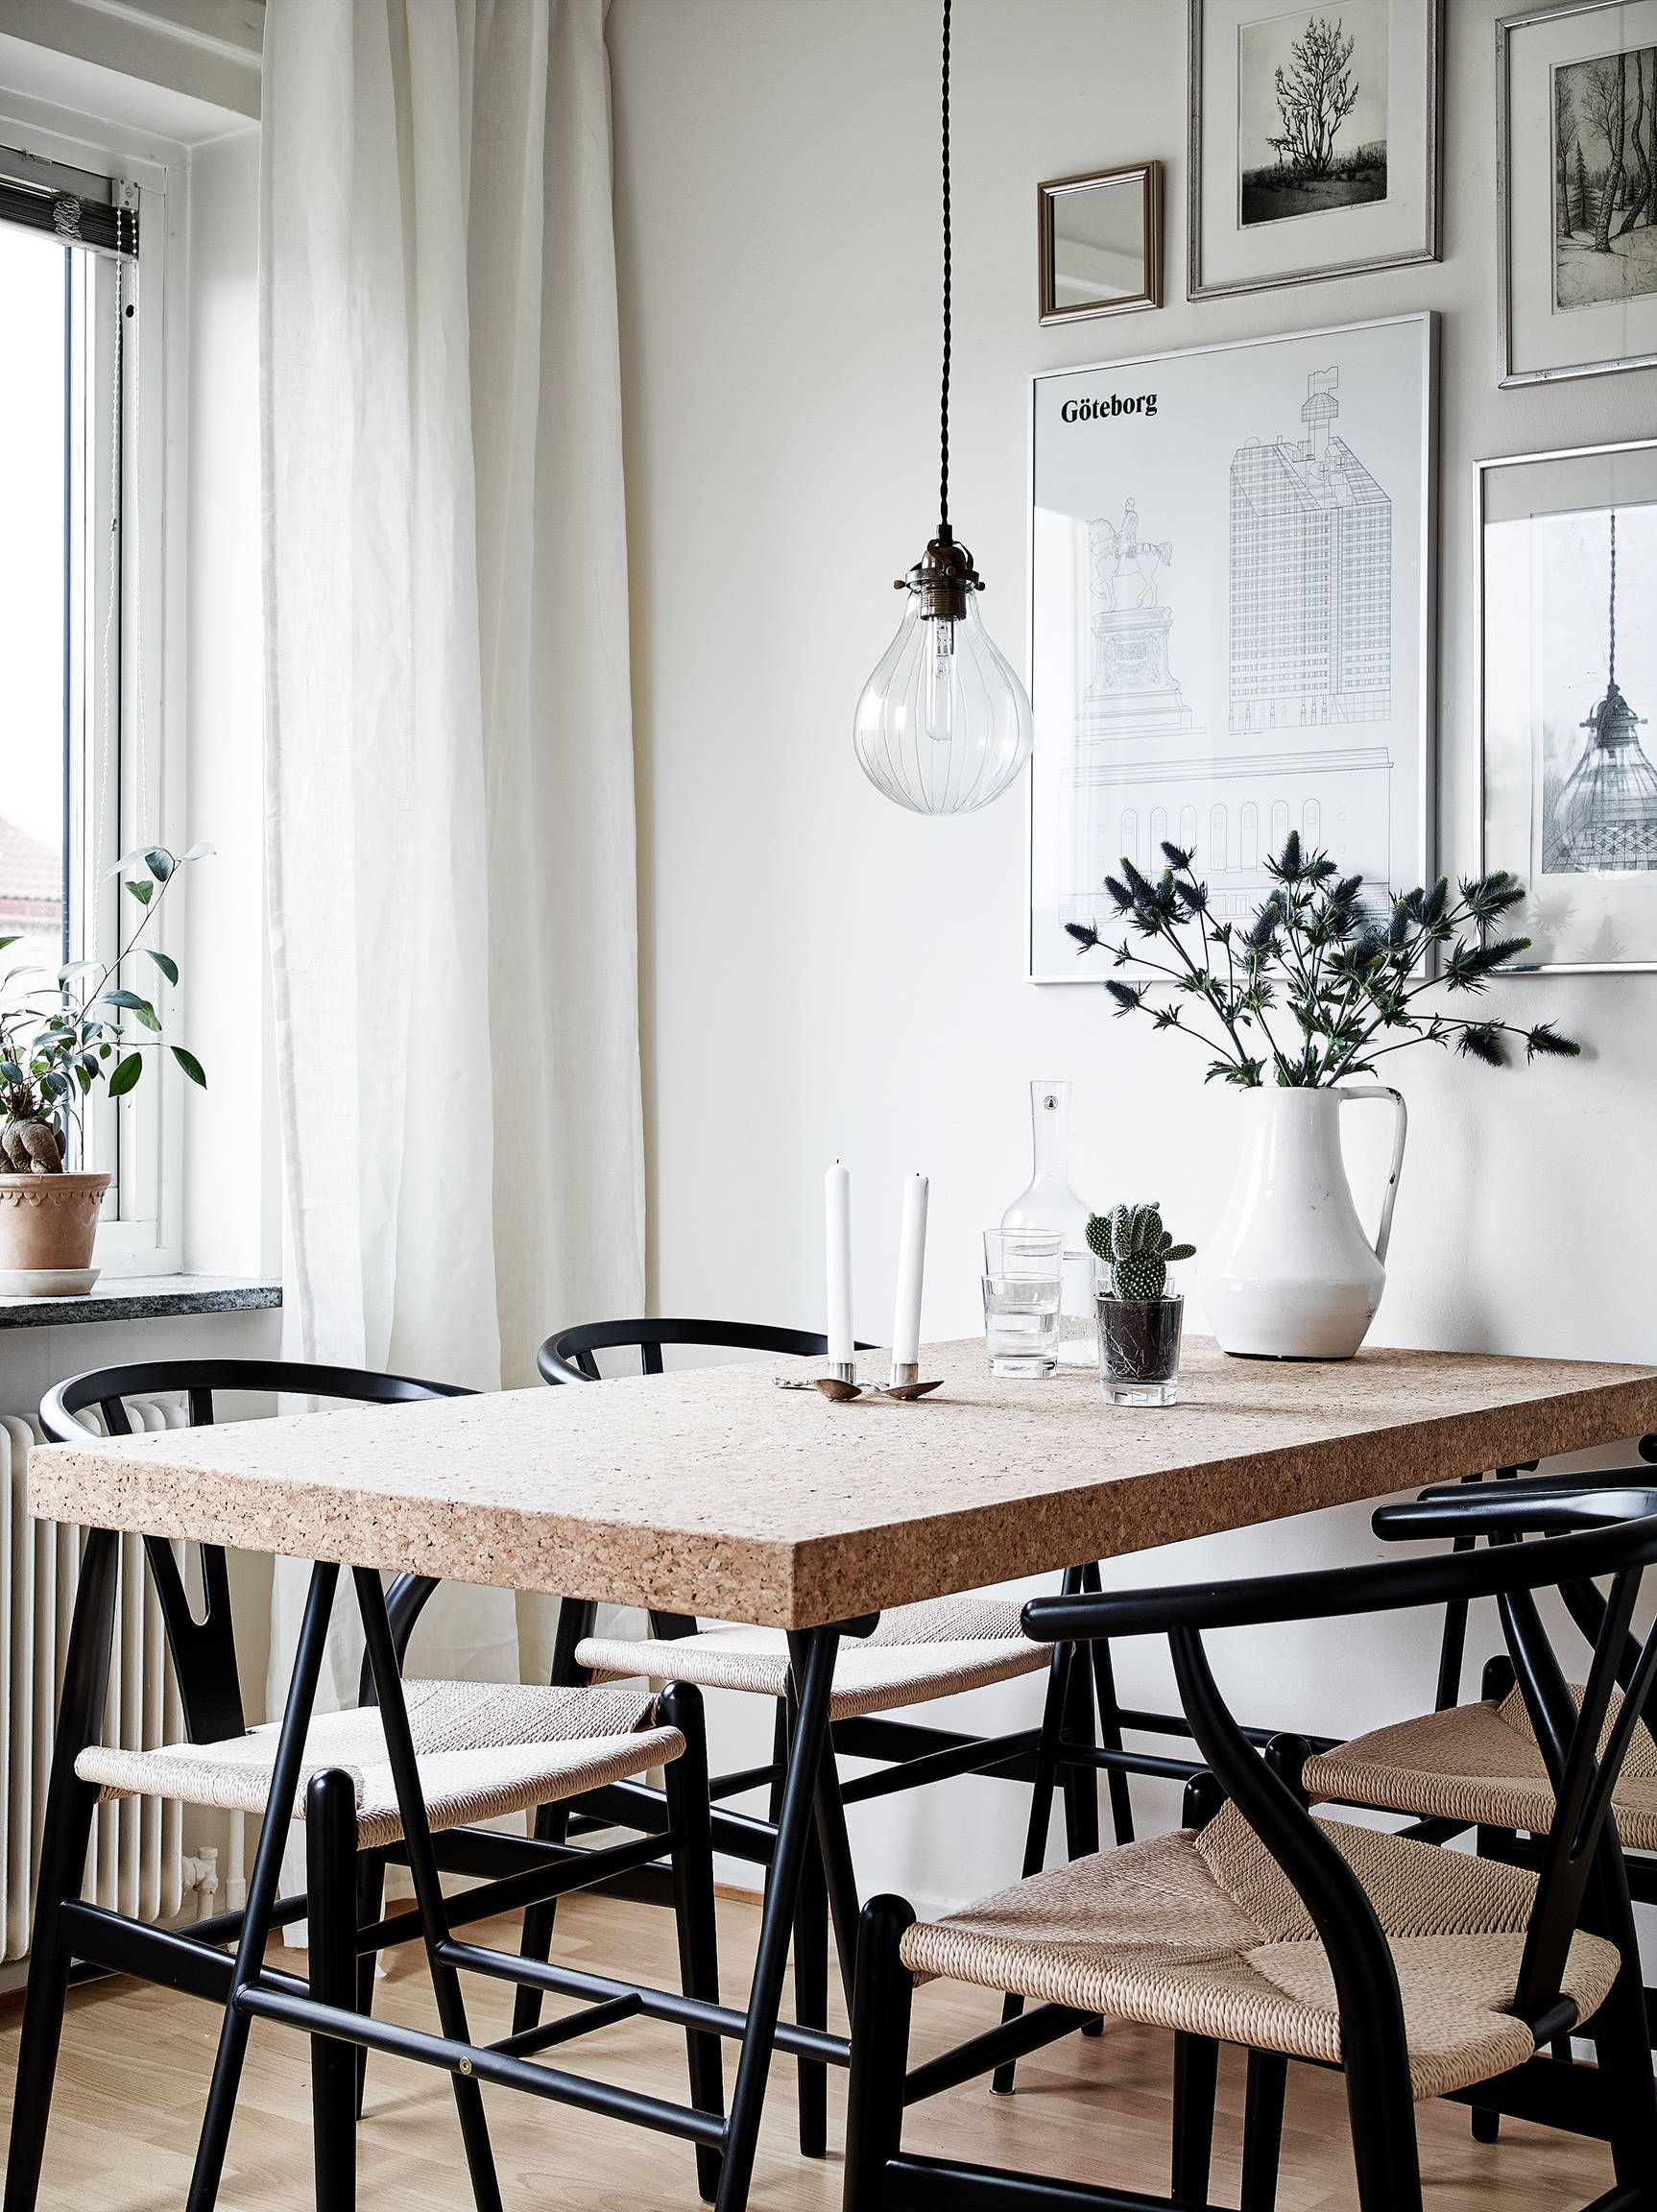 kitchen chair covers cork office high back black wishbone chairs and a table in the